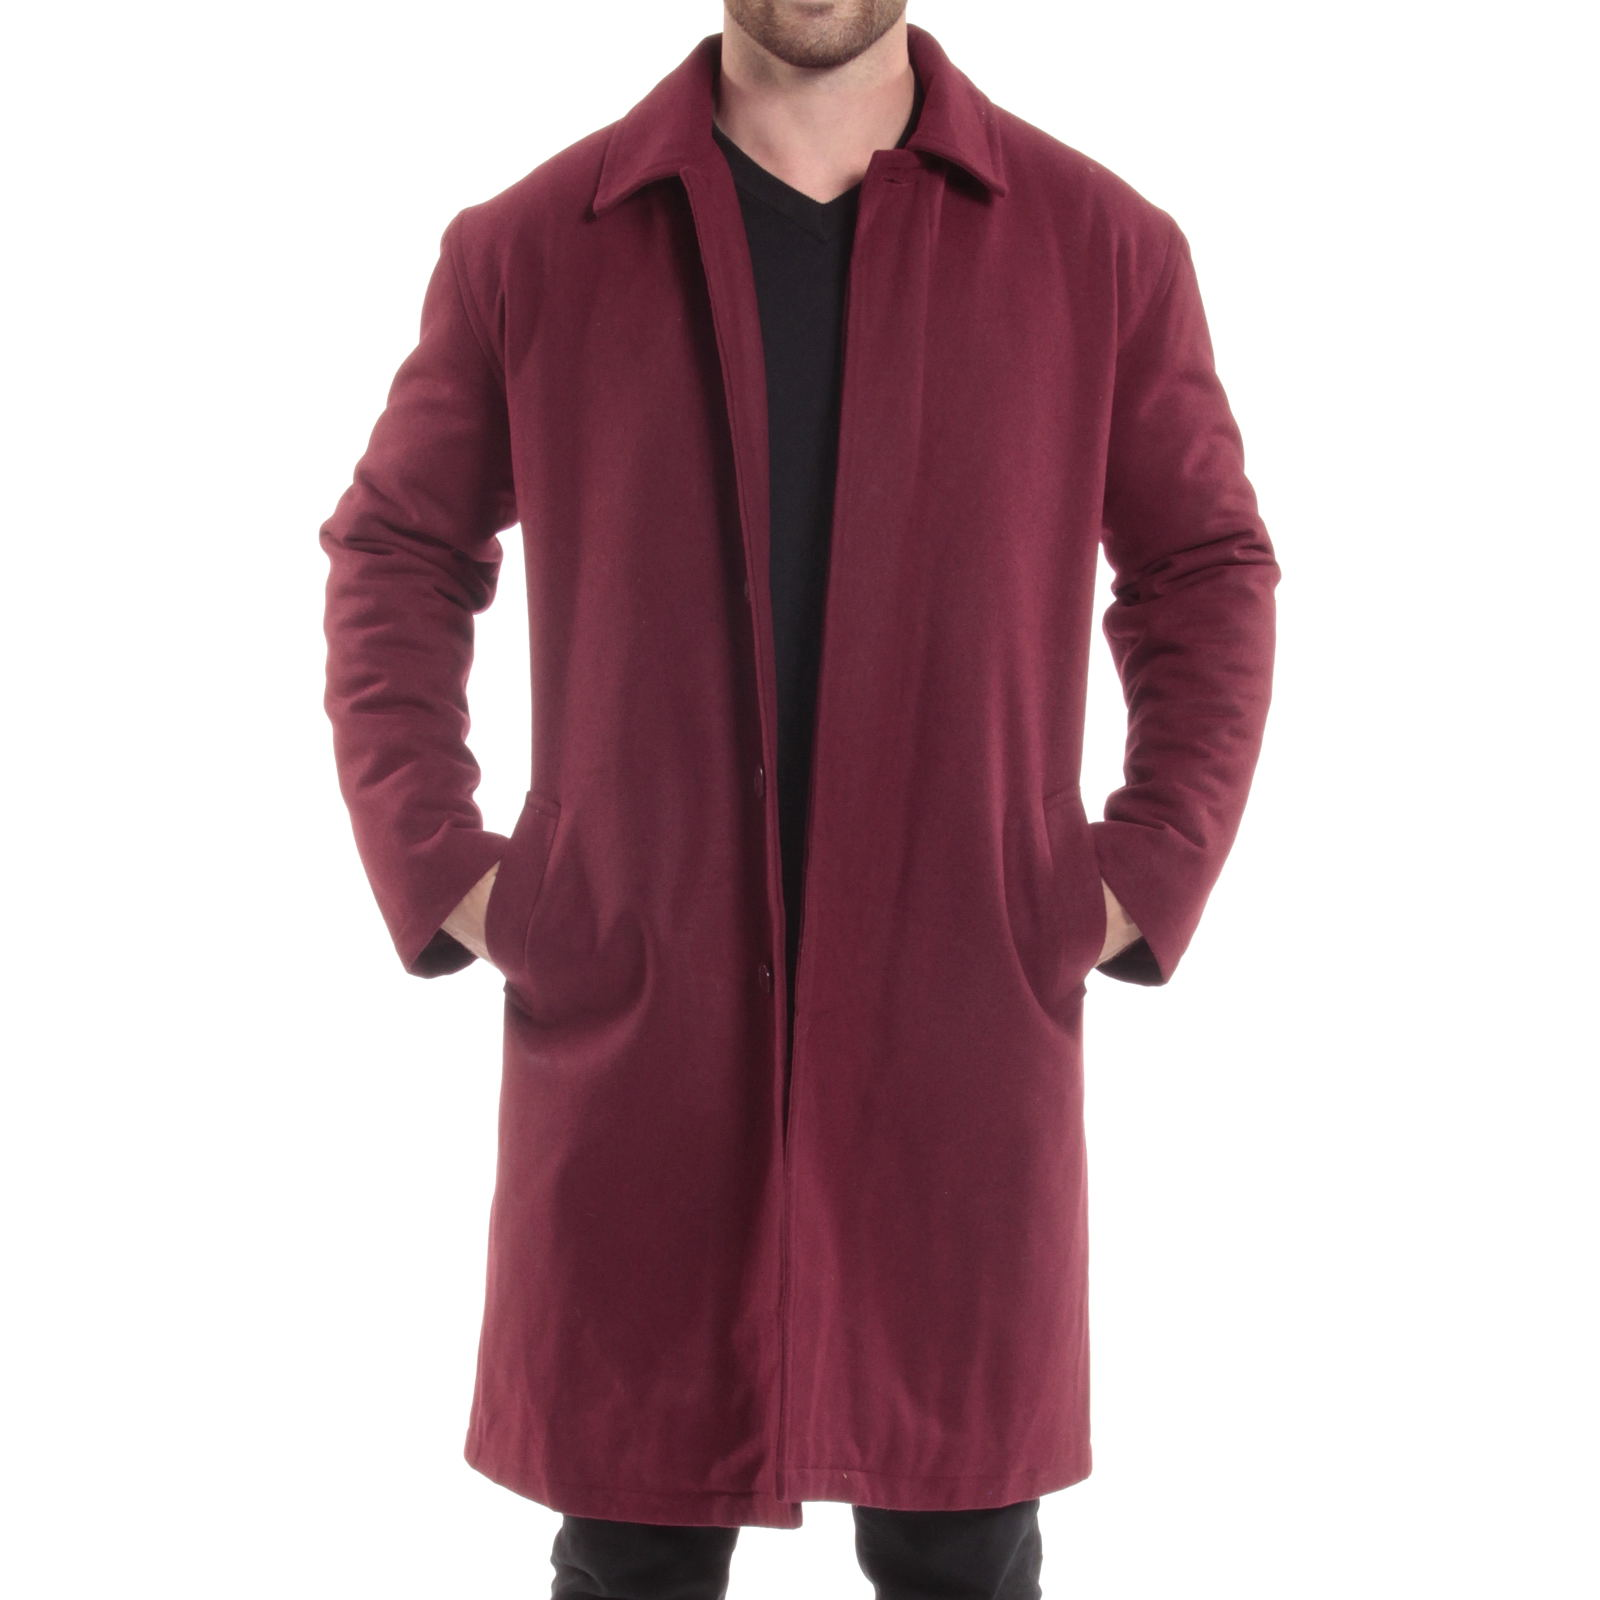 Alpine-Swiss-Mens-Zach-Knee-Length-Jacket-Top-Coat-Trench-Wool-Blend-Overcoat thumbnail 23